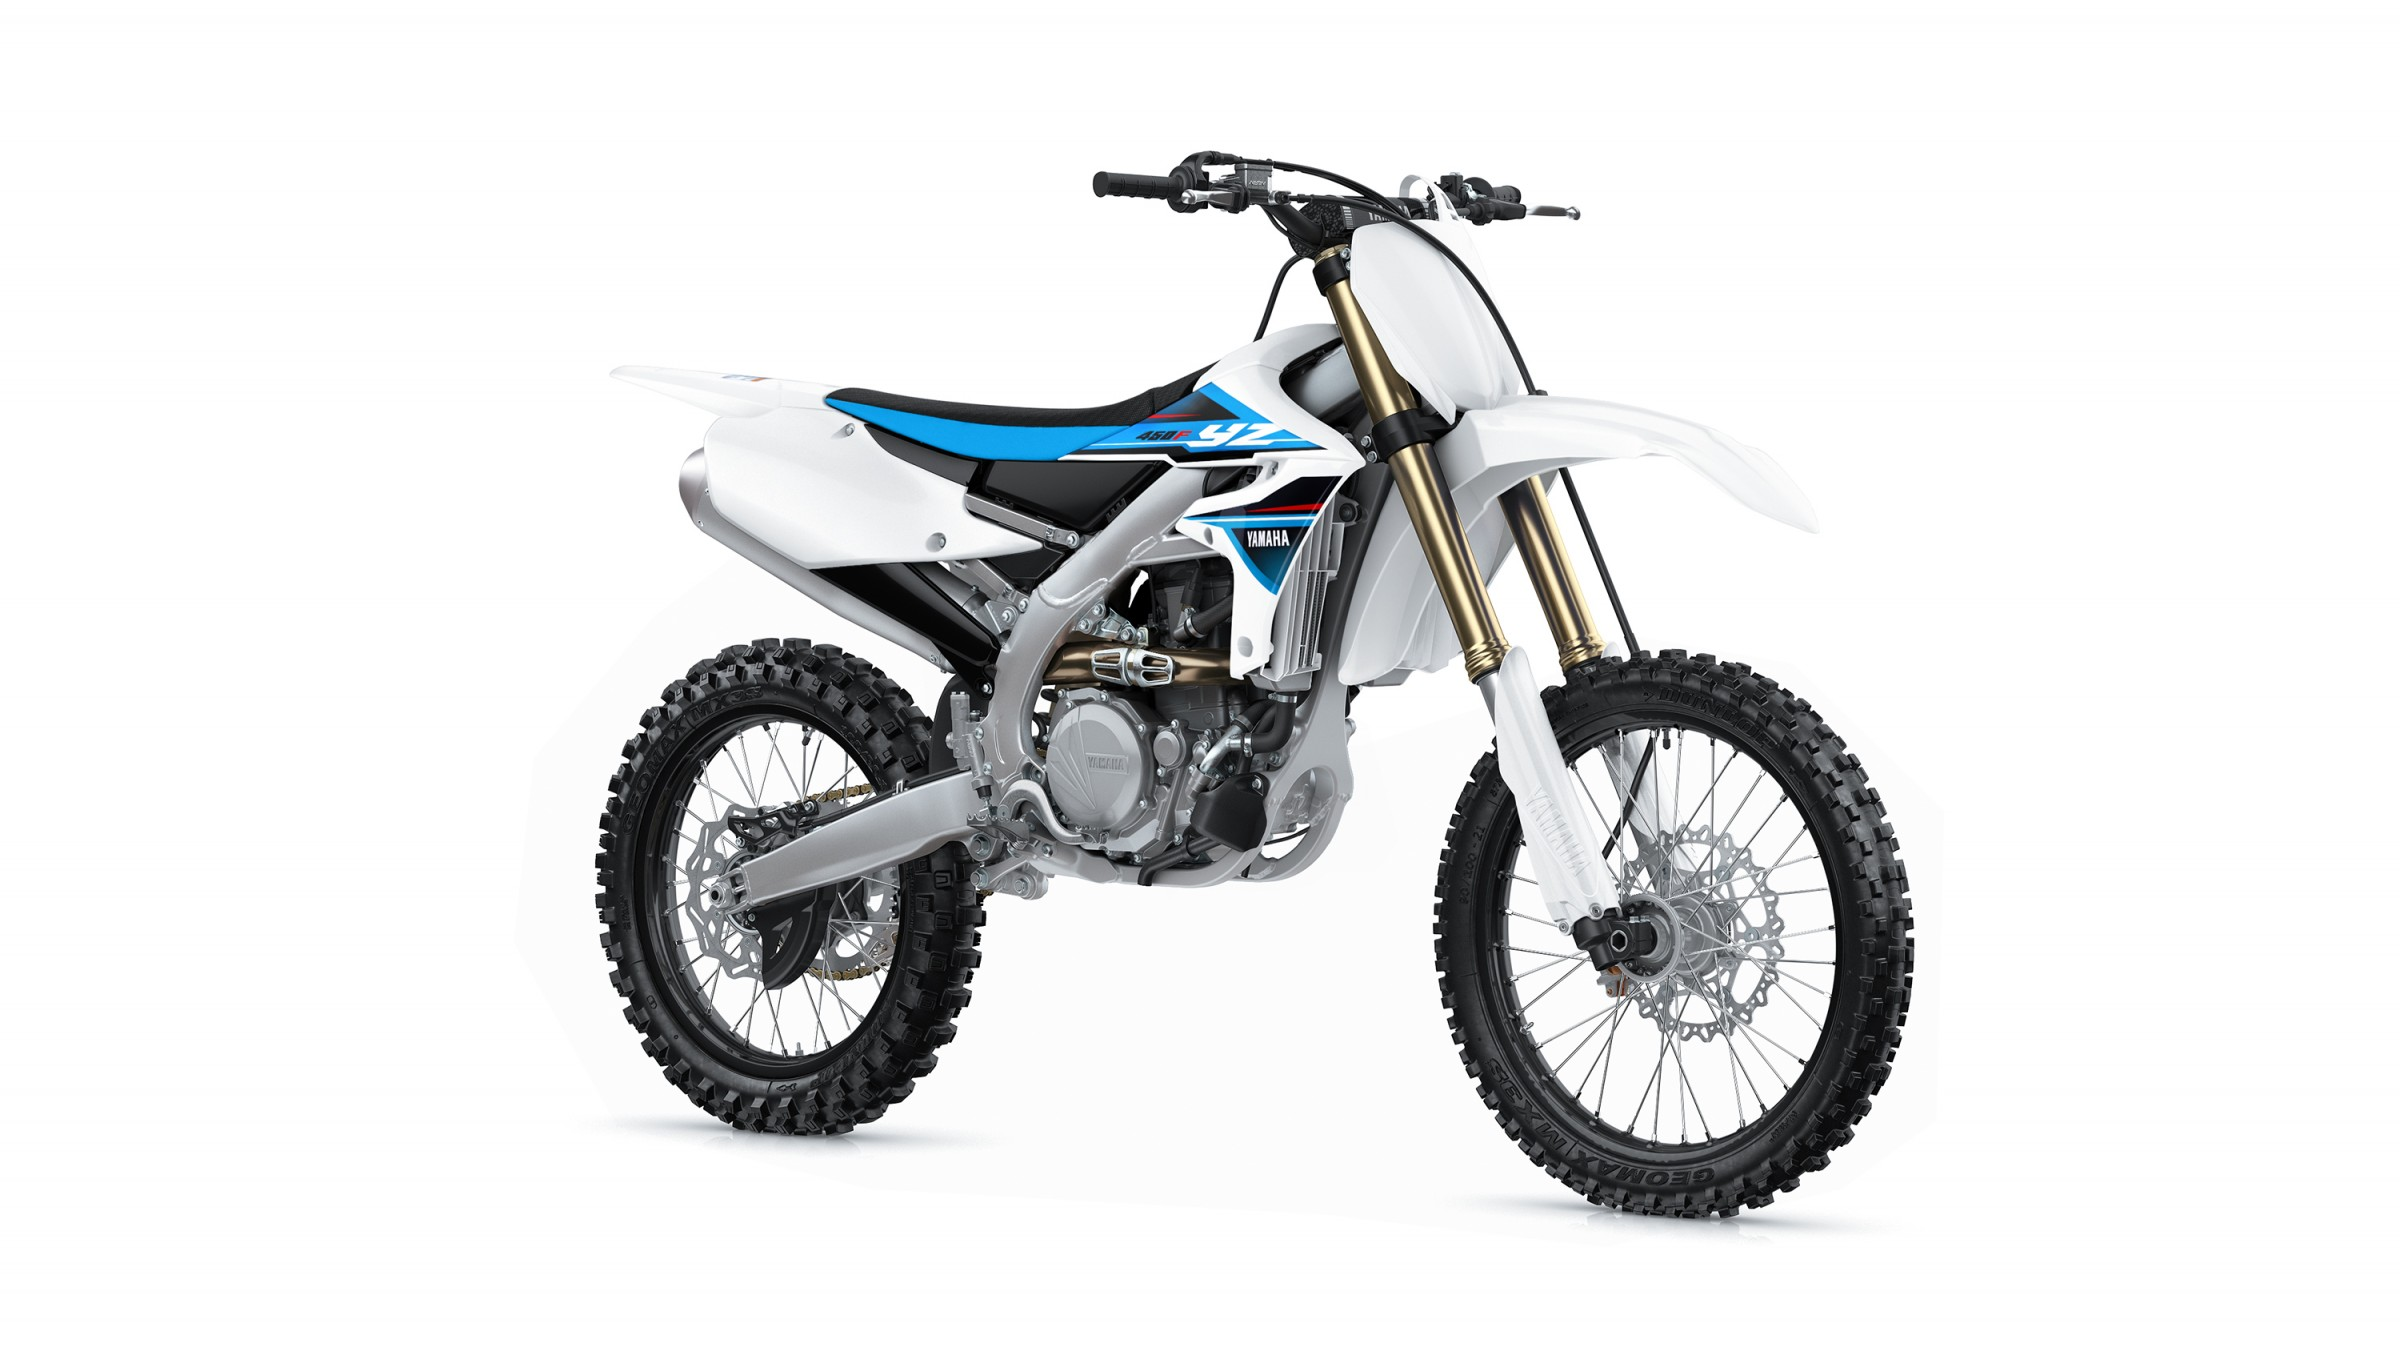 Yamaha Introduces Redesigned Yz250f And Updated Yz450f For